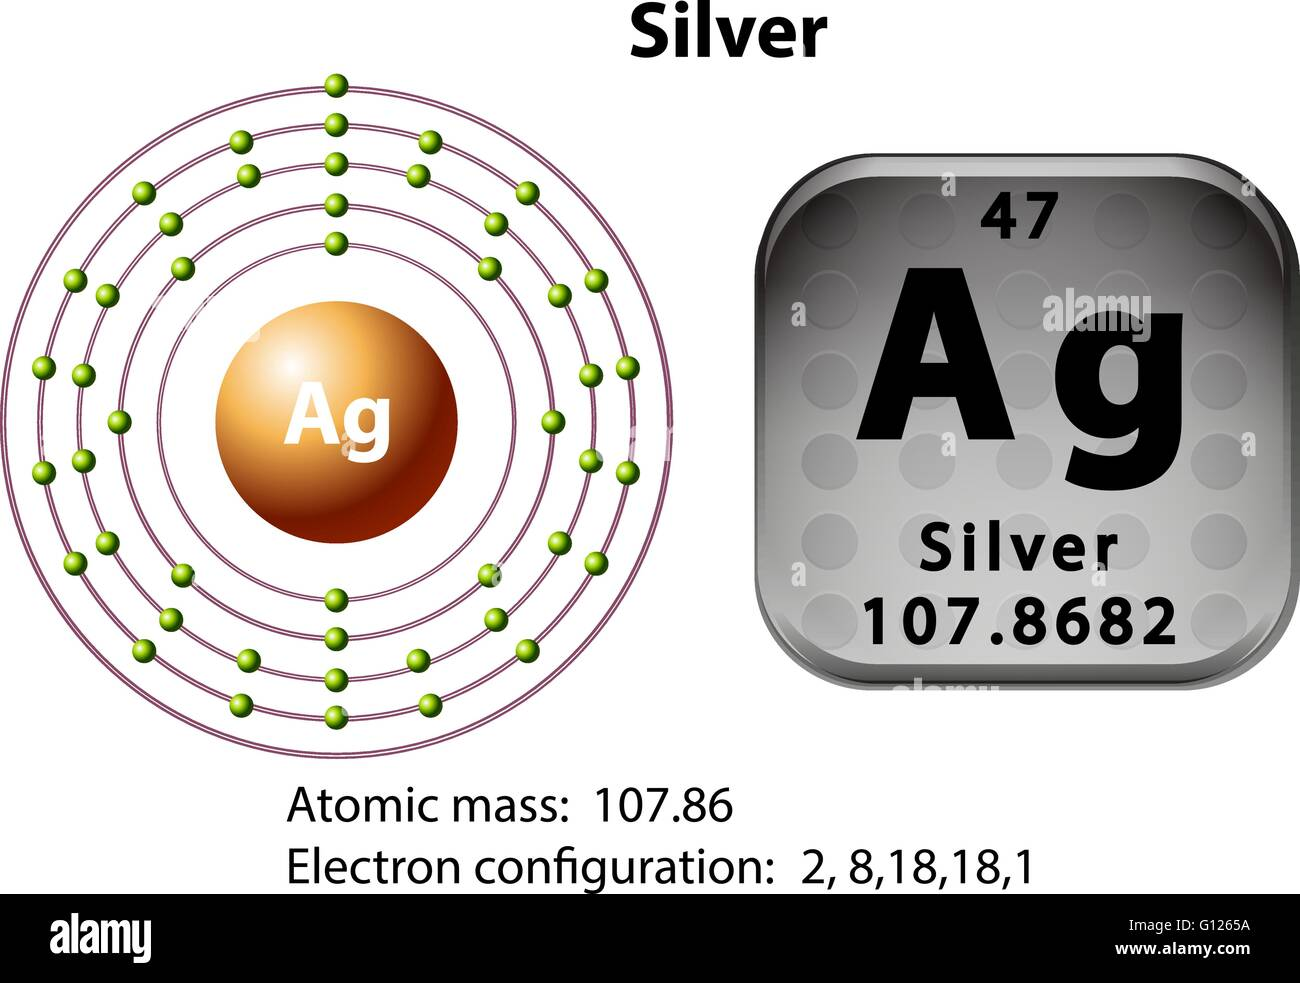 hight resolution of symbol and electron diagram for silver illustration